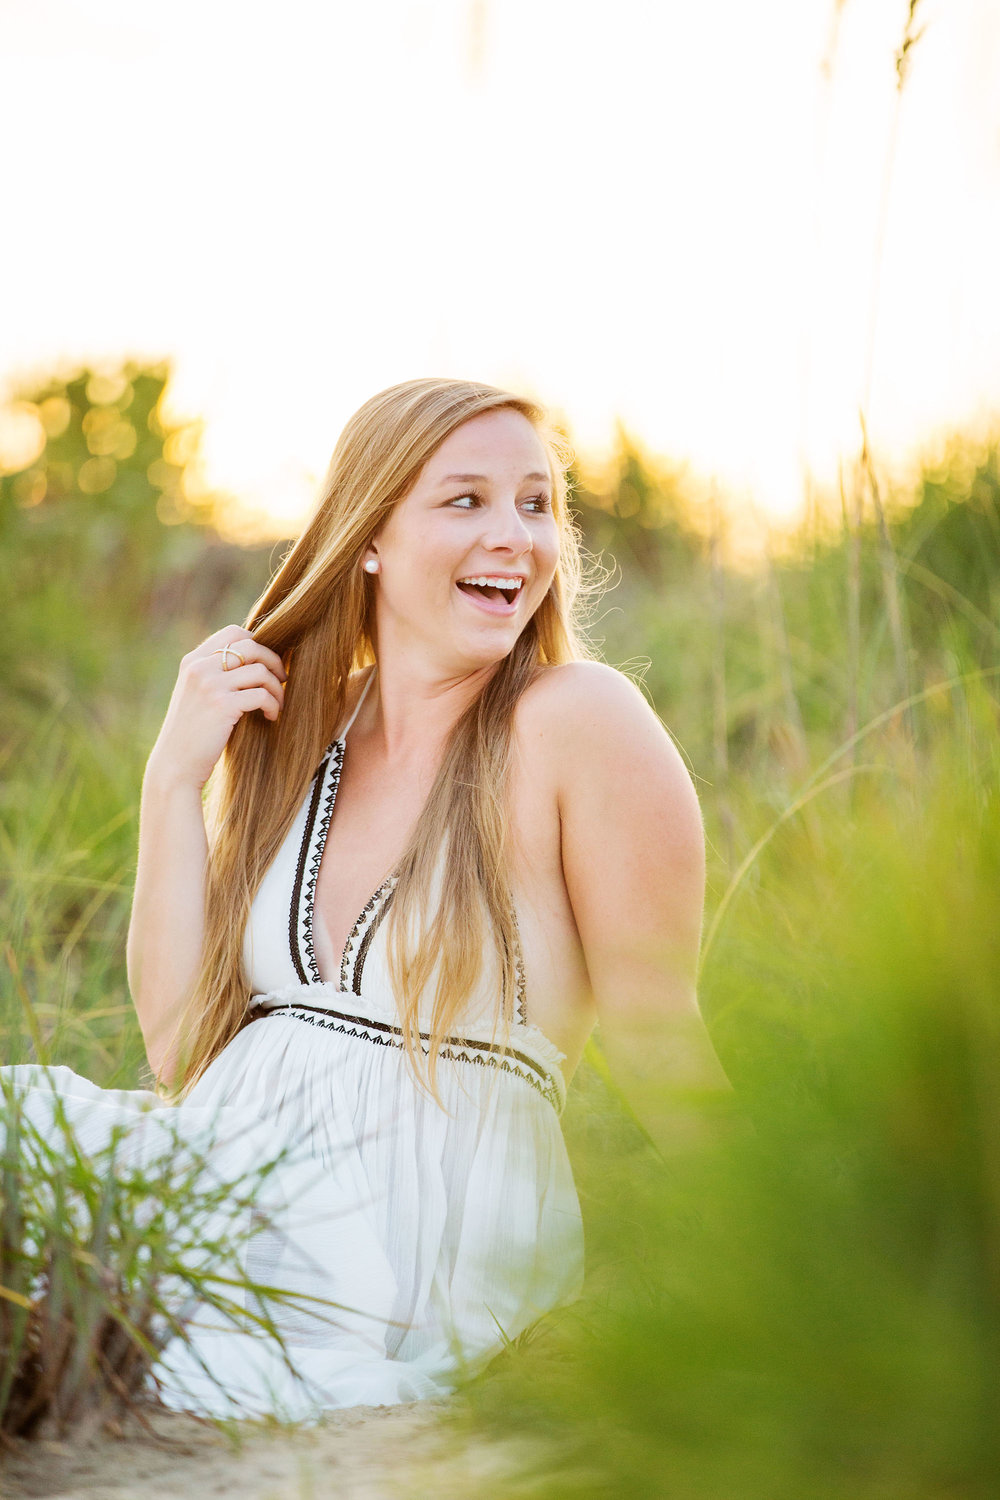 PeytonSeniorPortraits_AL-94 copy.jpg